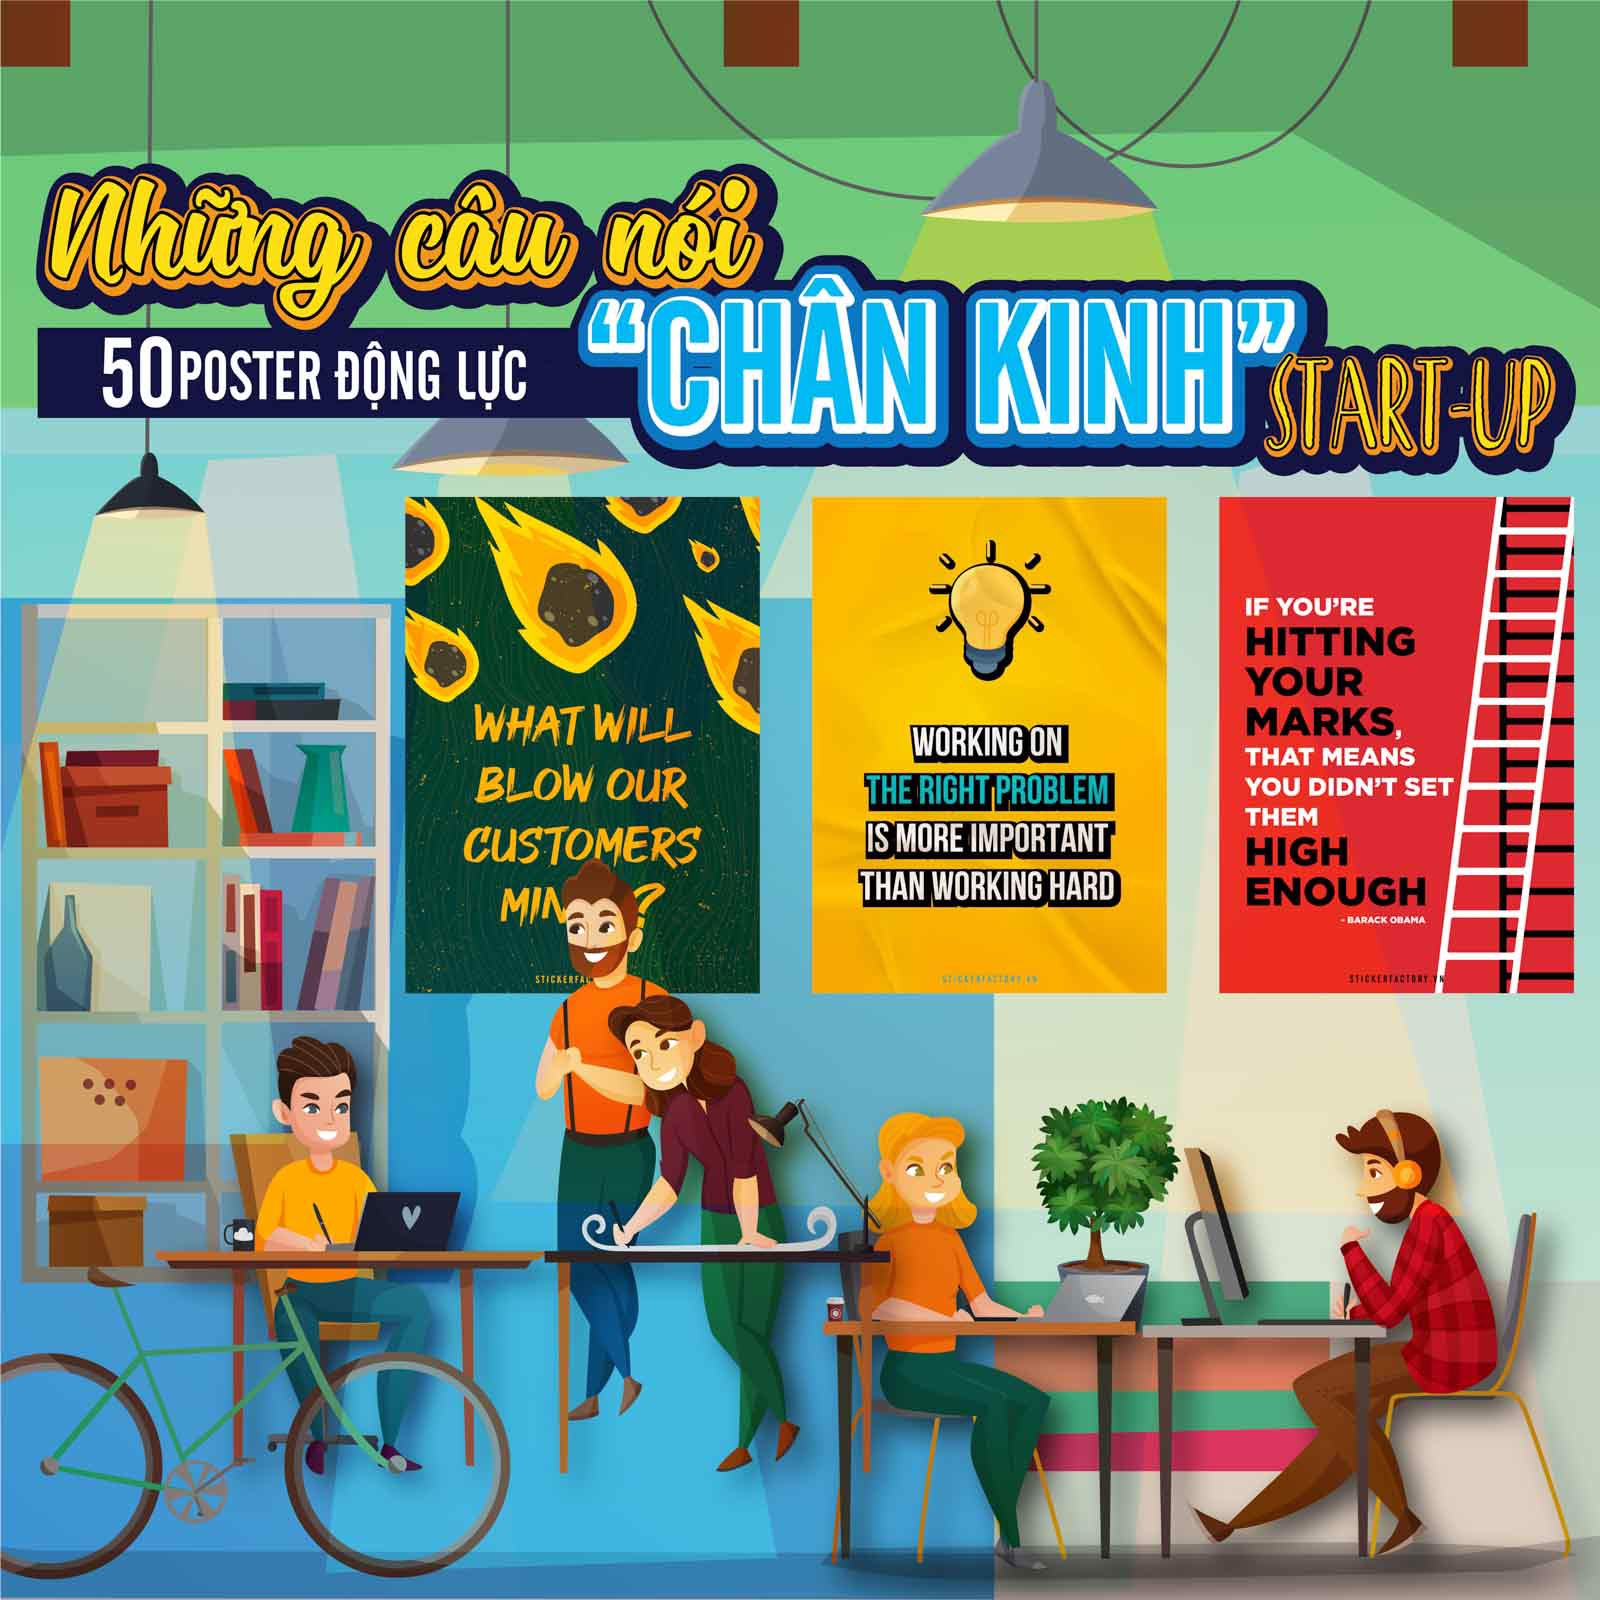 There's nothing wrong with staying small you can do big things with a small team - Poster động lực Chân Kinh Startup